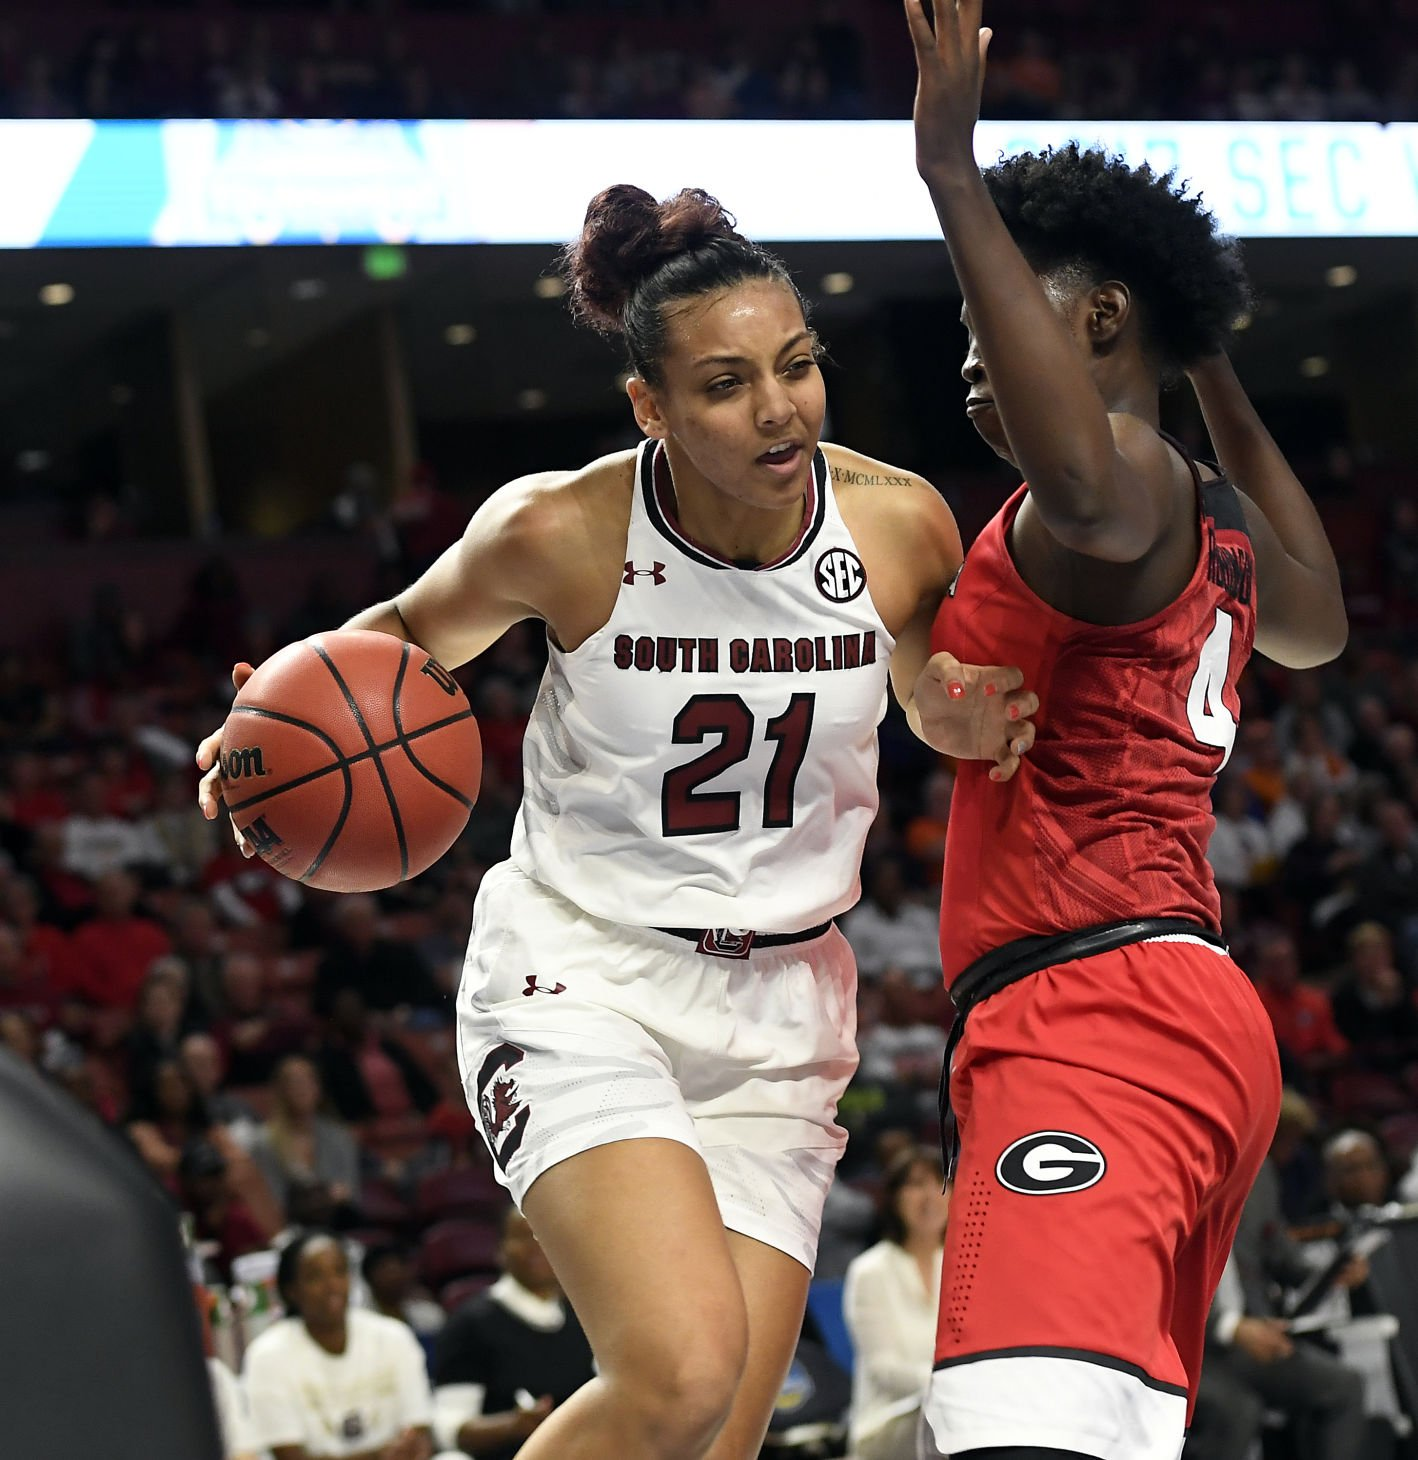 USC Easily Gets by Georgia 72-48 in SEC Tourney